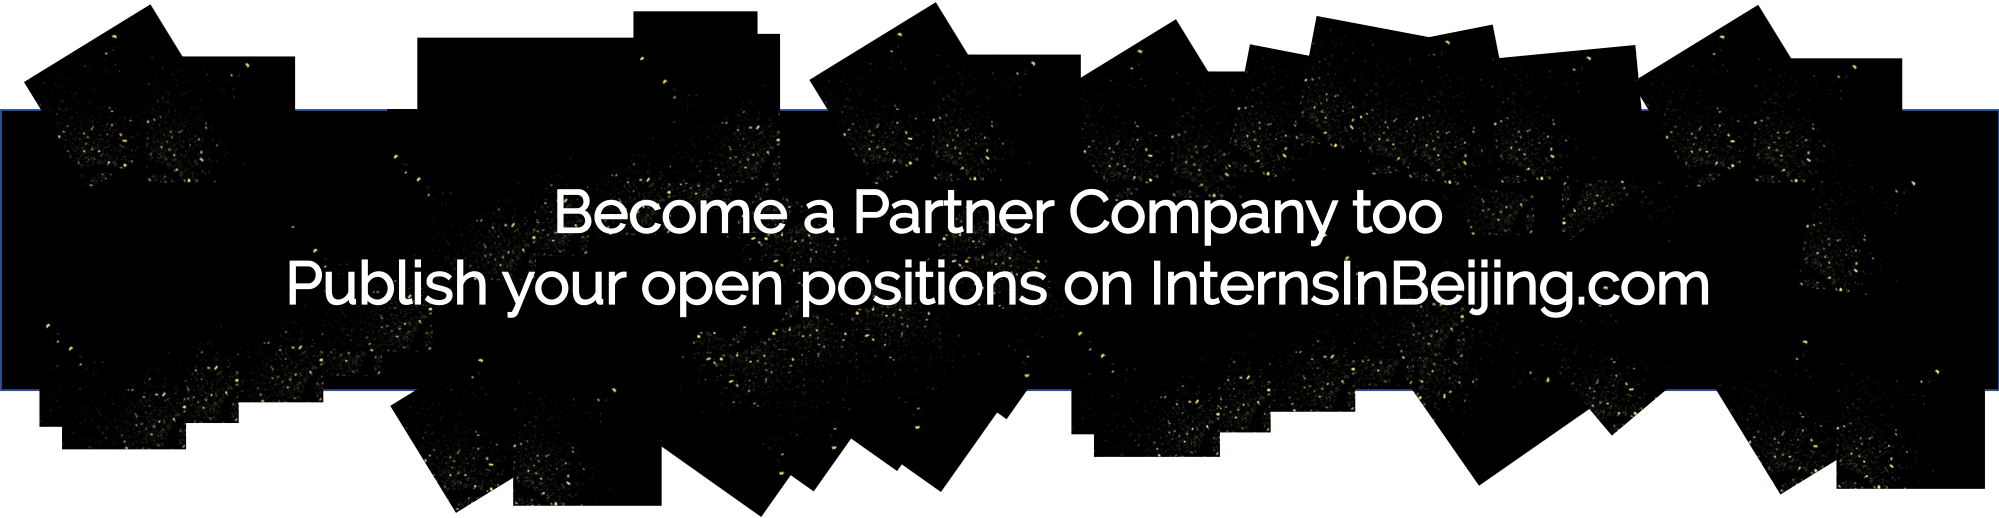 become partner company